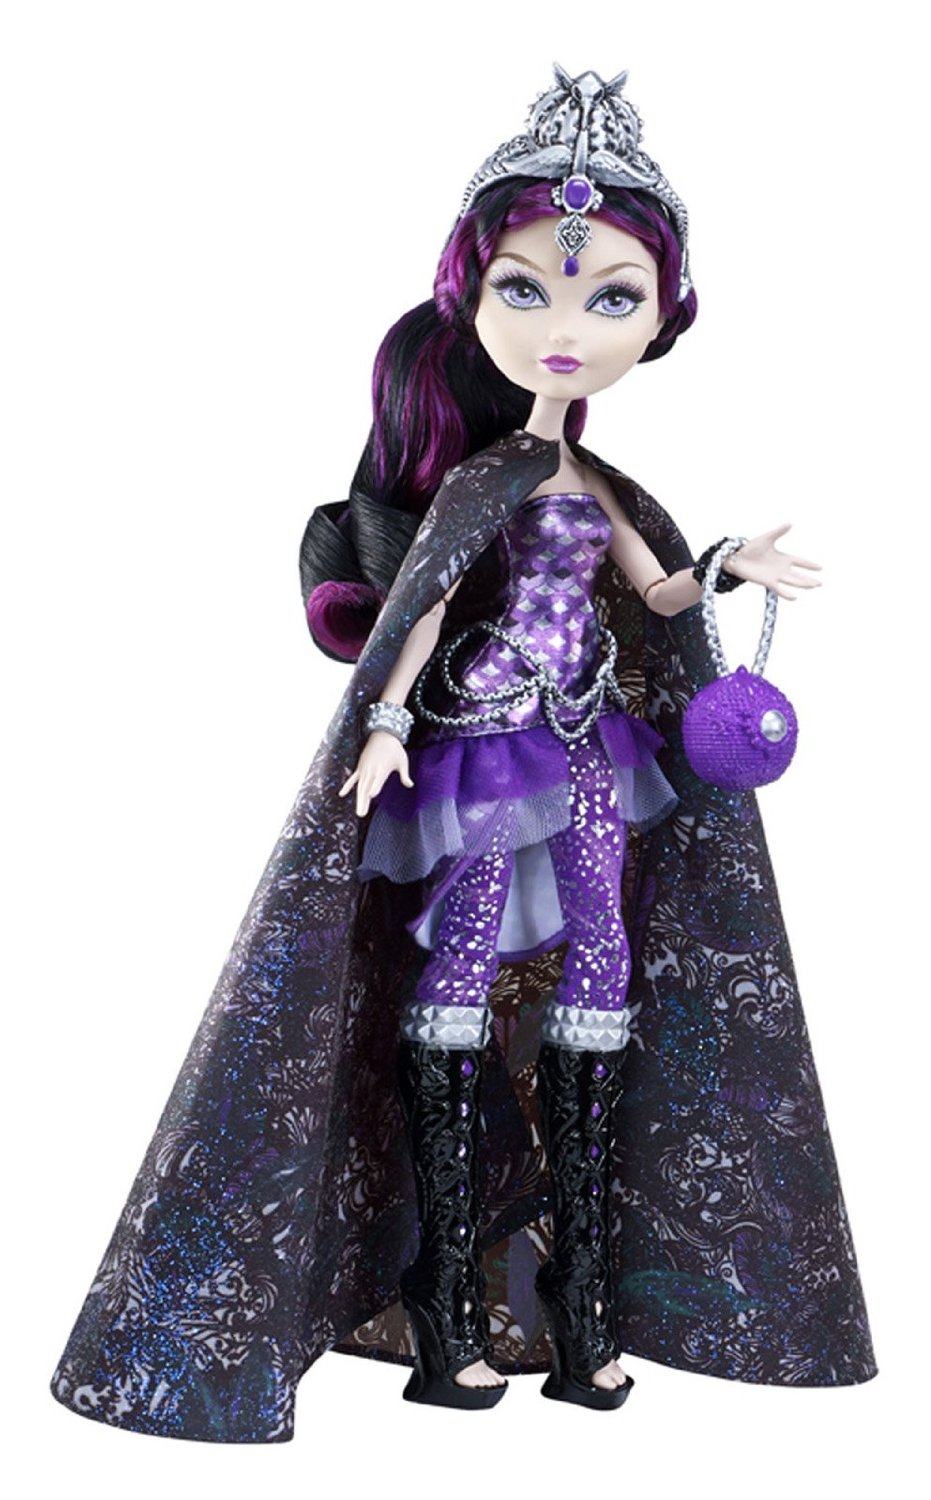 Image - Raven Queen Legacy Day Doll.png | Royal & Rebel ...